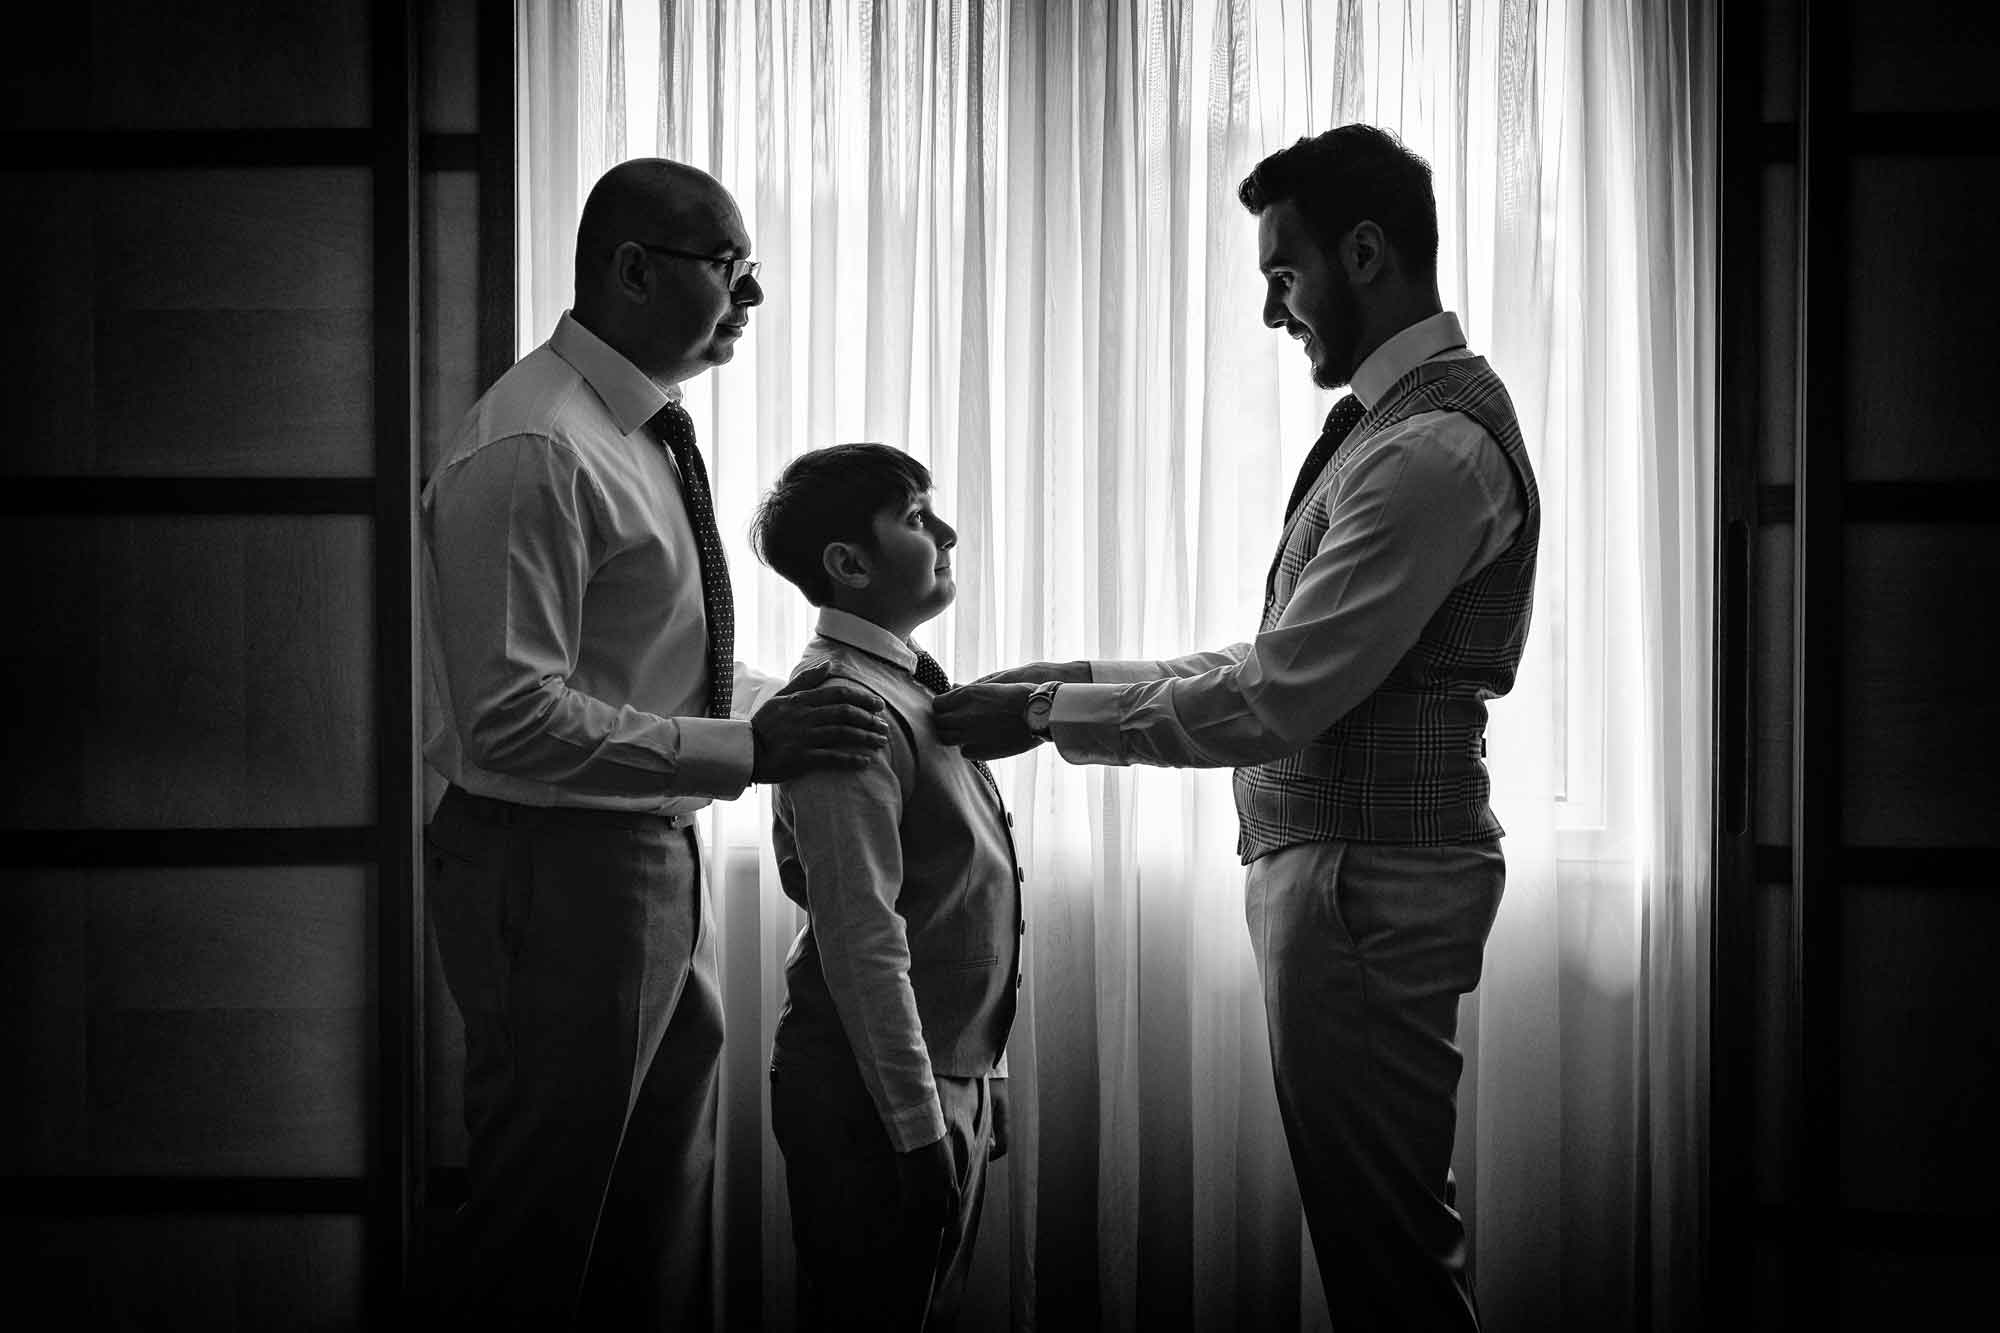 kate-hopewell-smith-sony-alpha-9-groom-adjusts-page-boy-tie-before-ceremony-as-father-looks-on